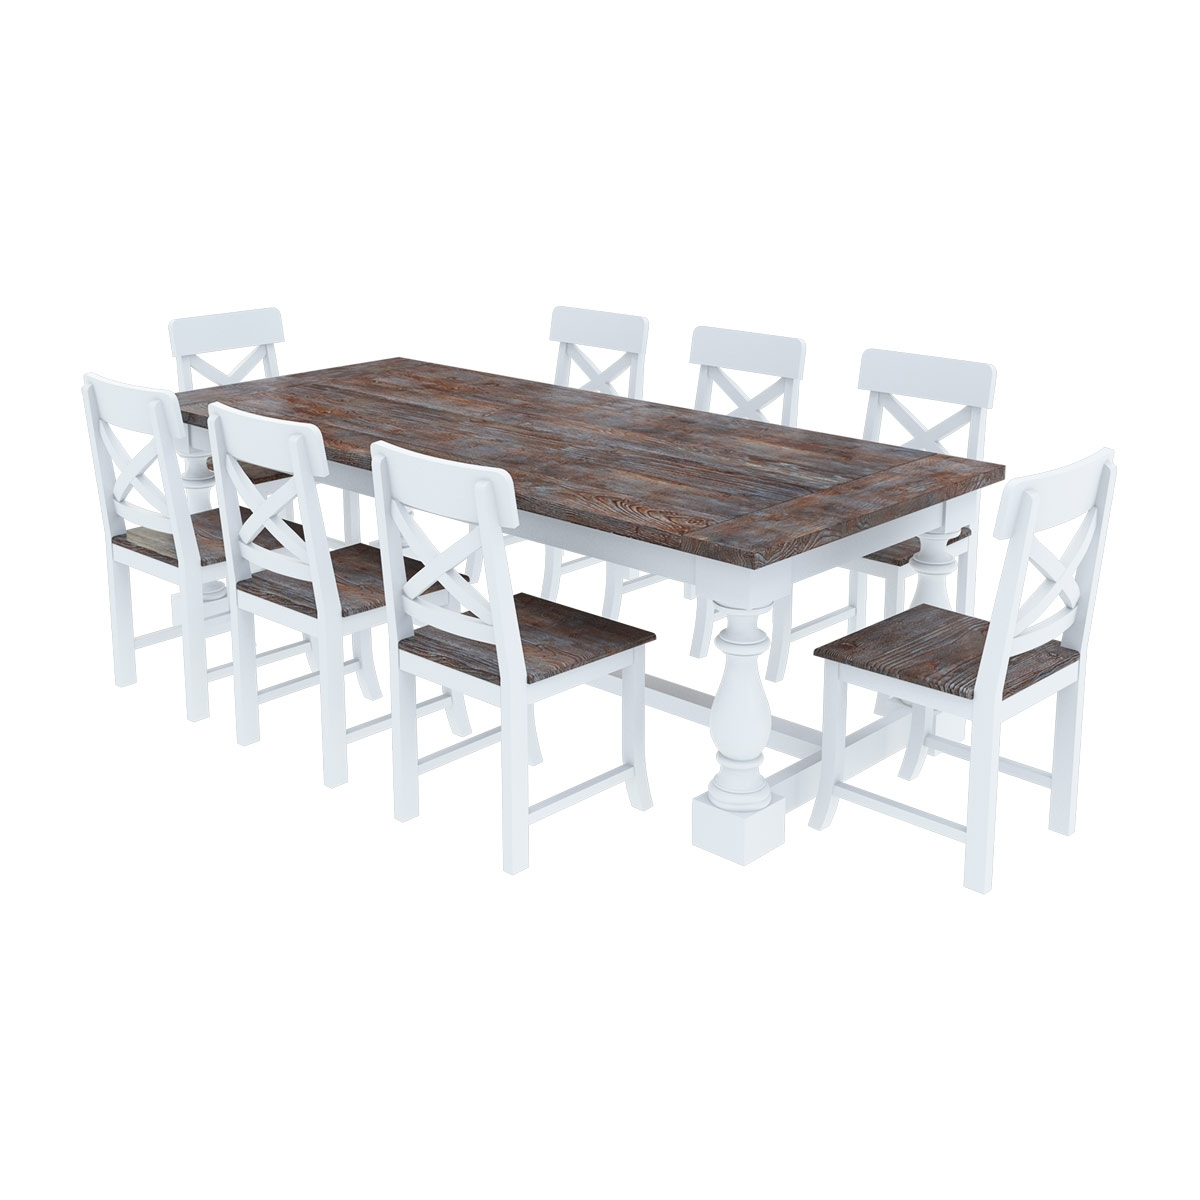 Well Liked Danville Modern Teak And Solid Wood Dining Table With 8 Chairs Set Inside Solid Oak Dining Tables And 8 Chairs (View 25 of 25)